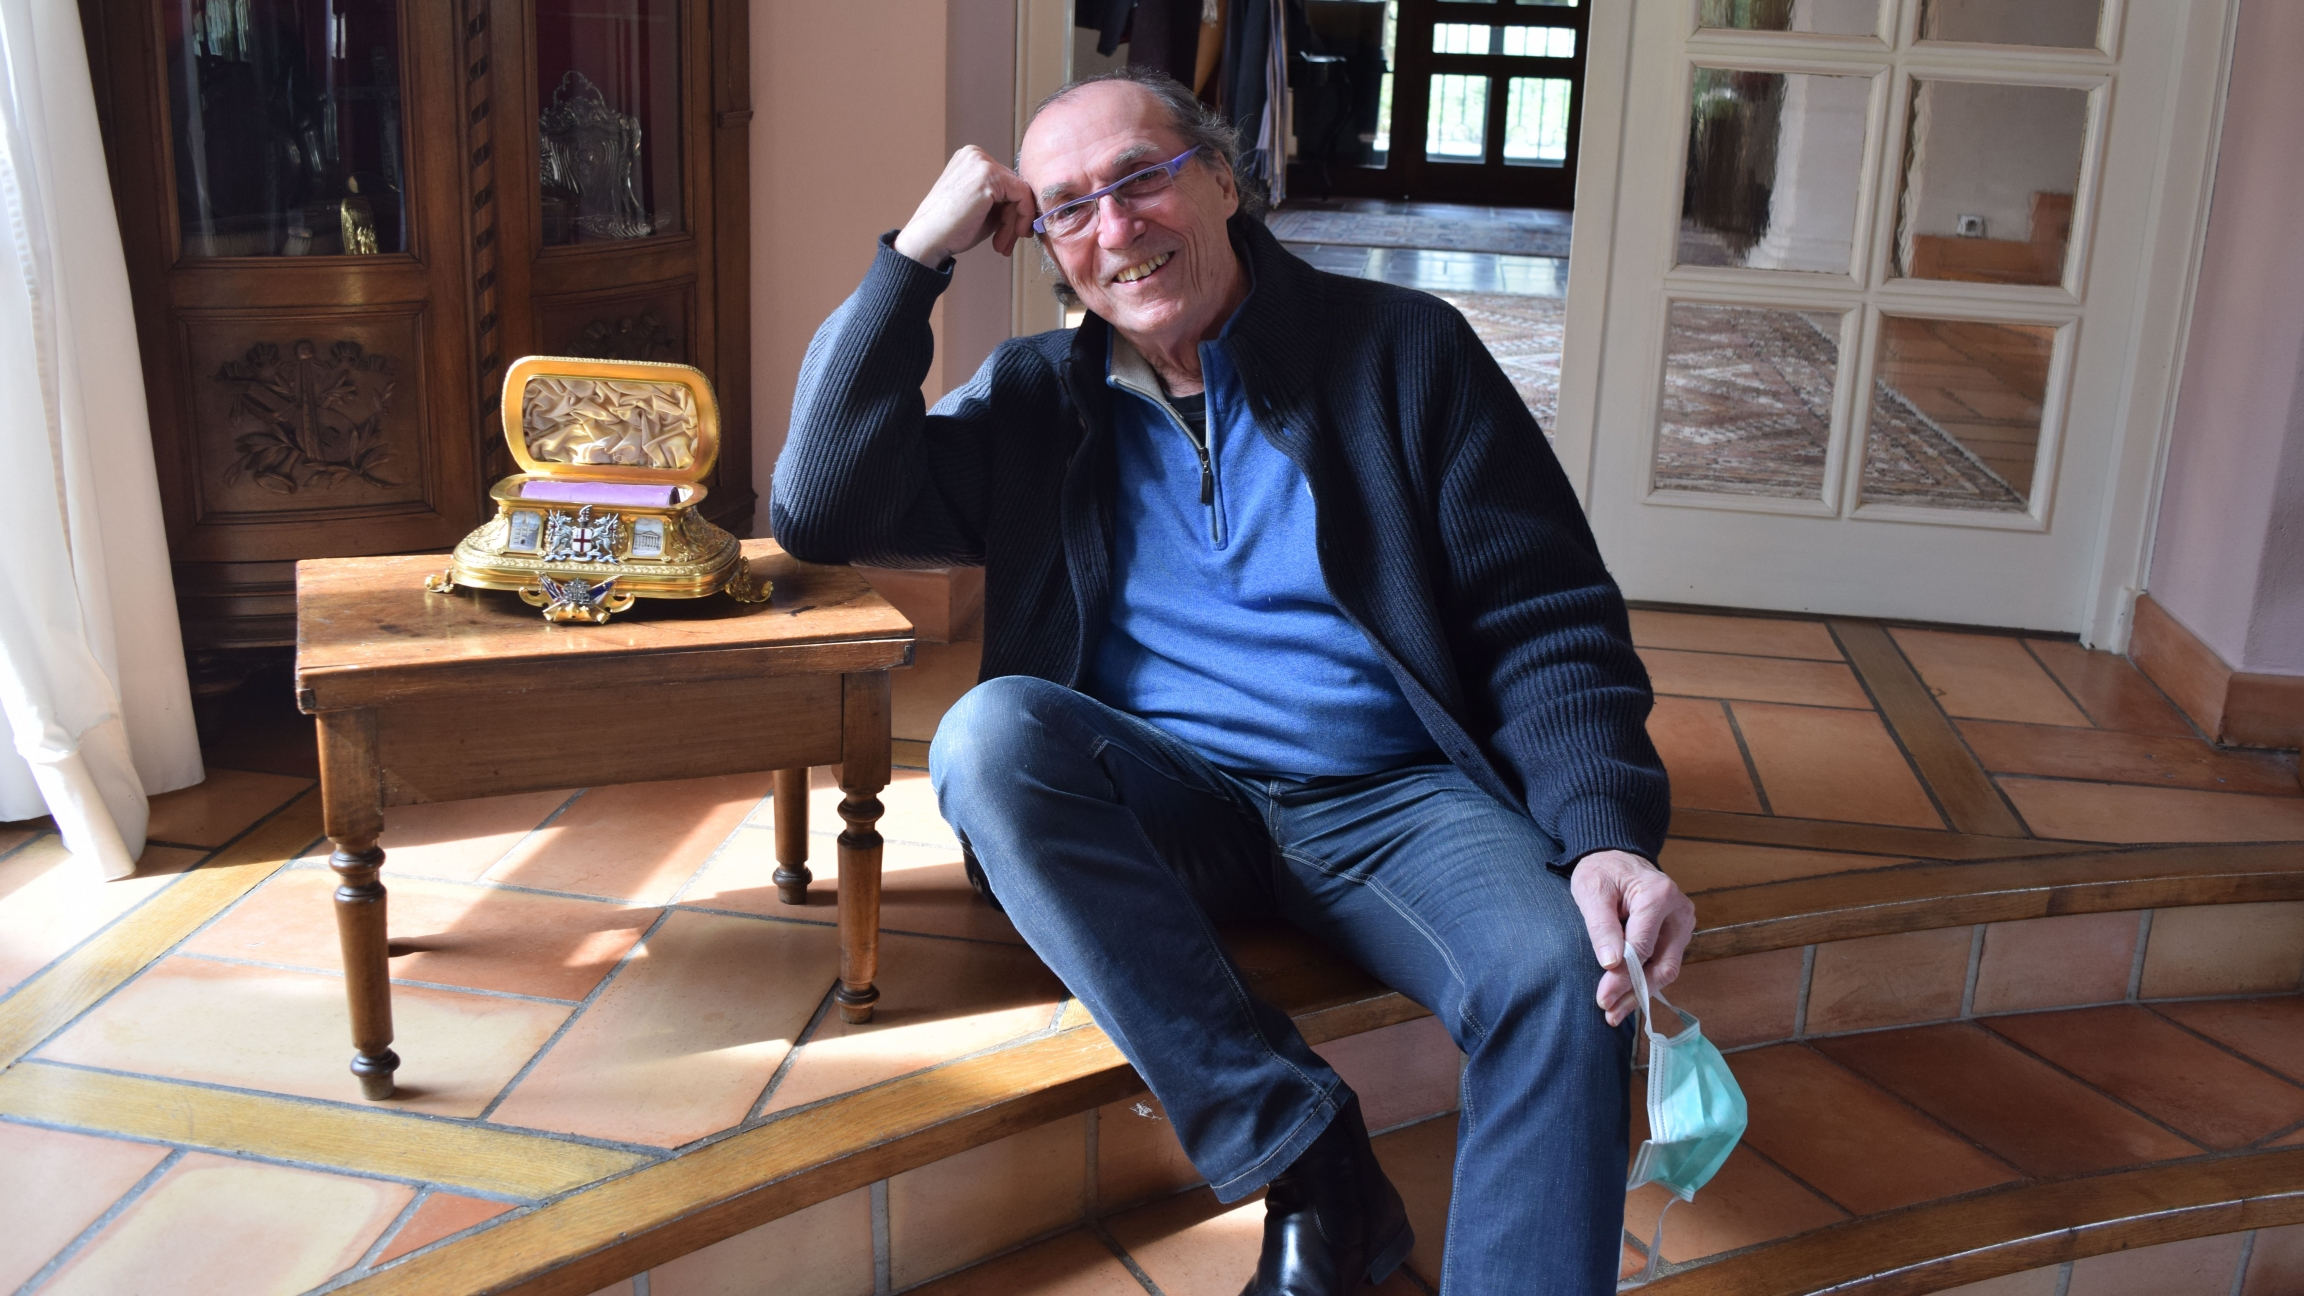 An older white male sits next to a tiny golden casket and smiles